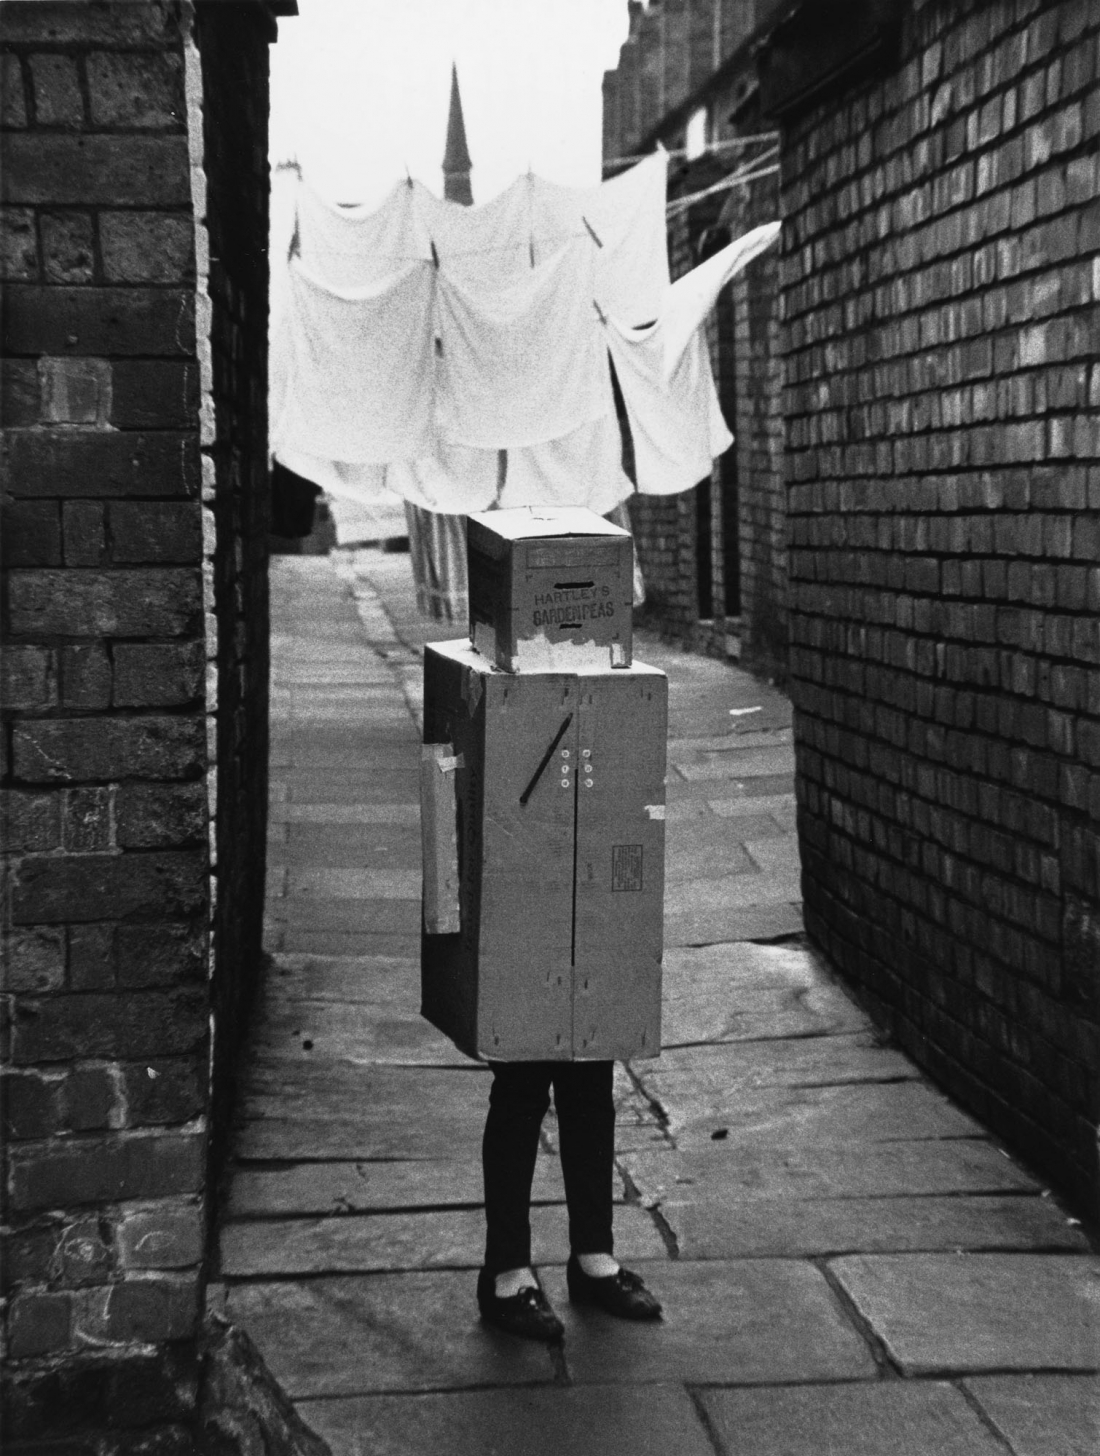 Shirley Baker Manchester 1966 © Estate of Shirley Baker, Courtesy of The Photographers' Gallery